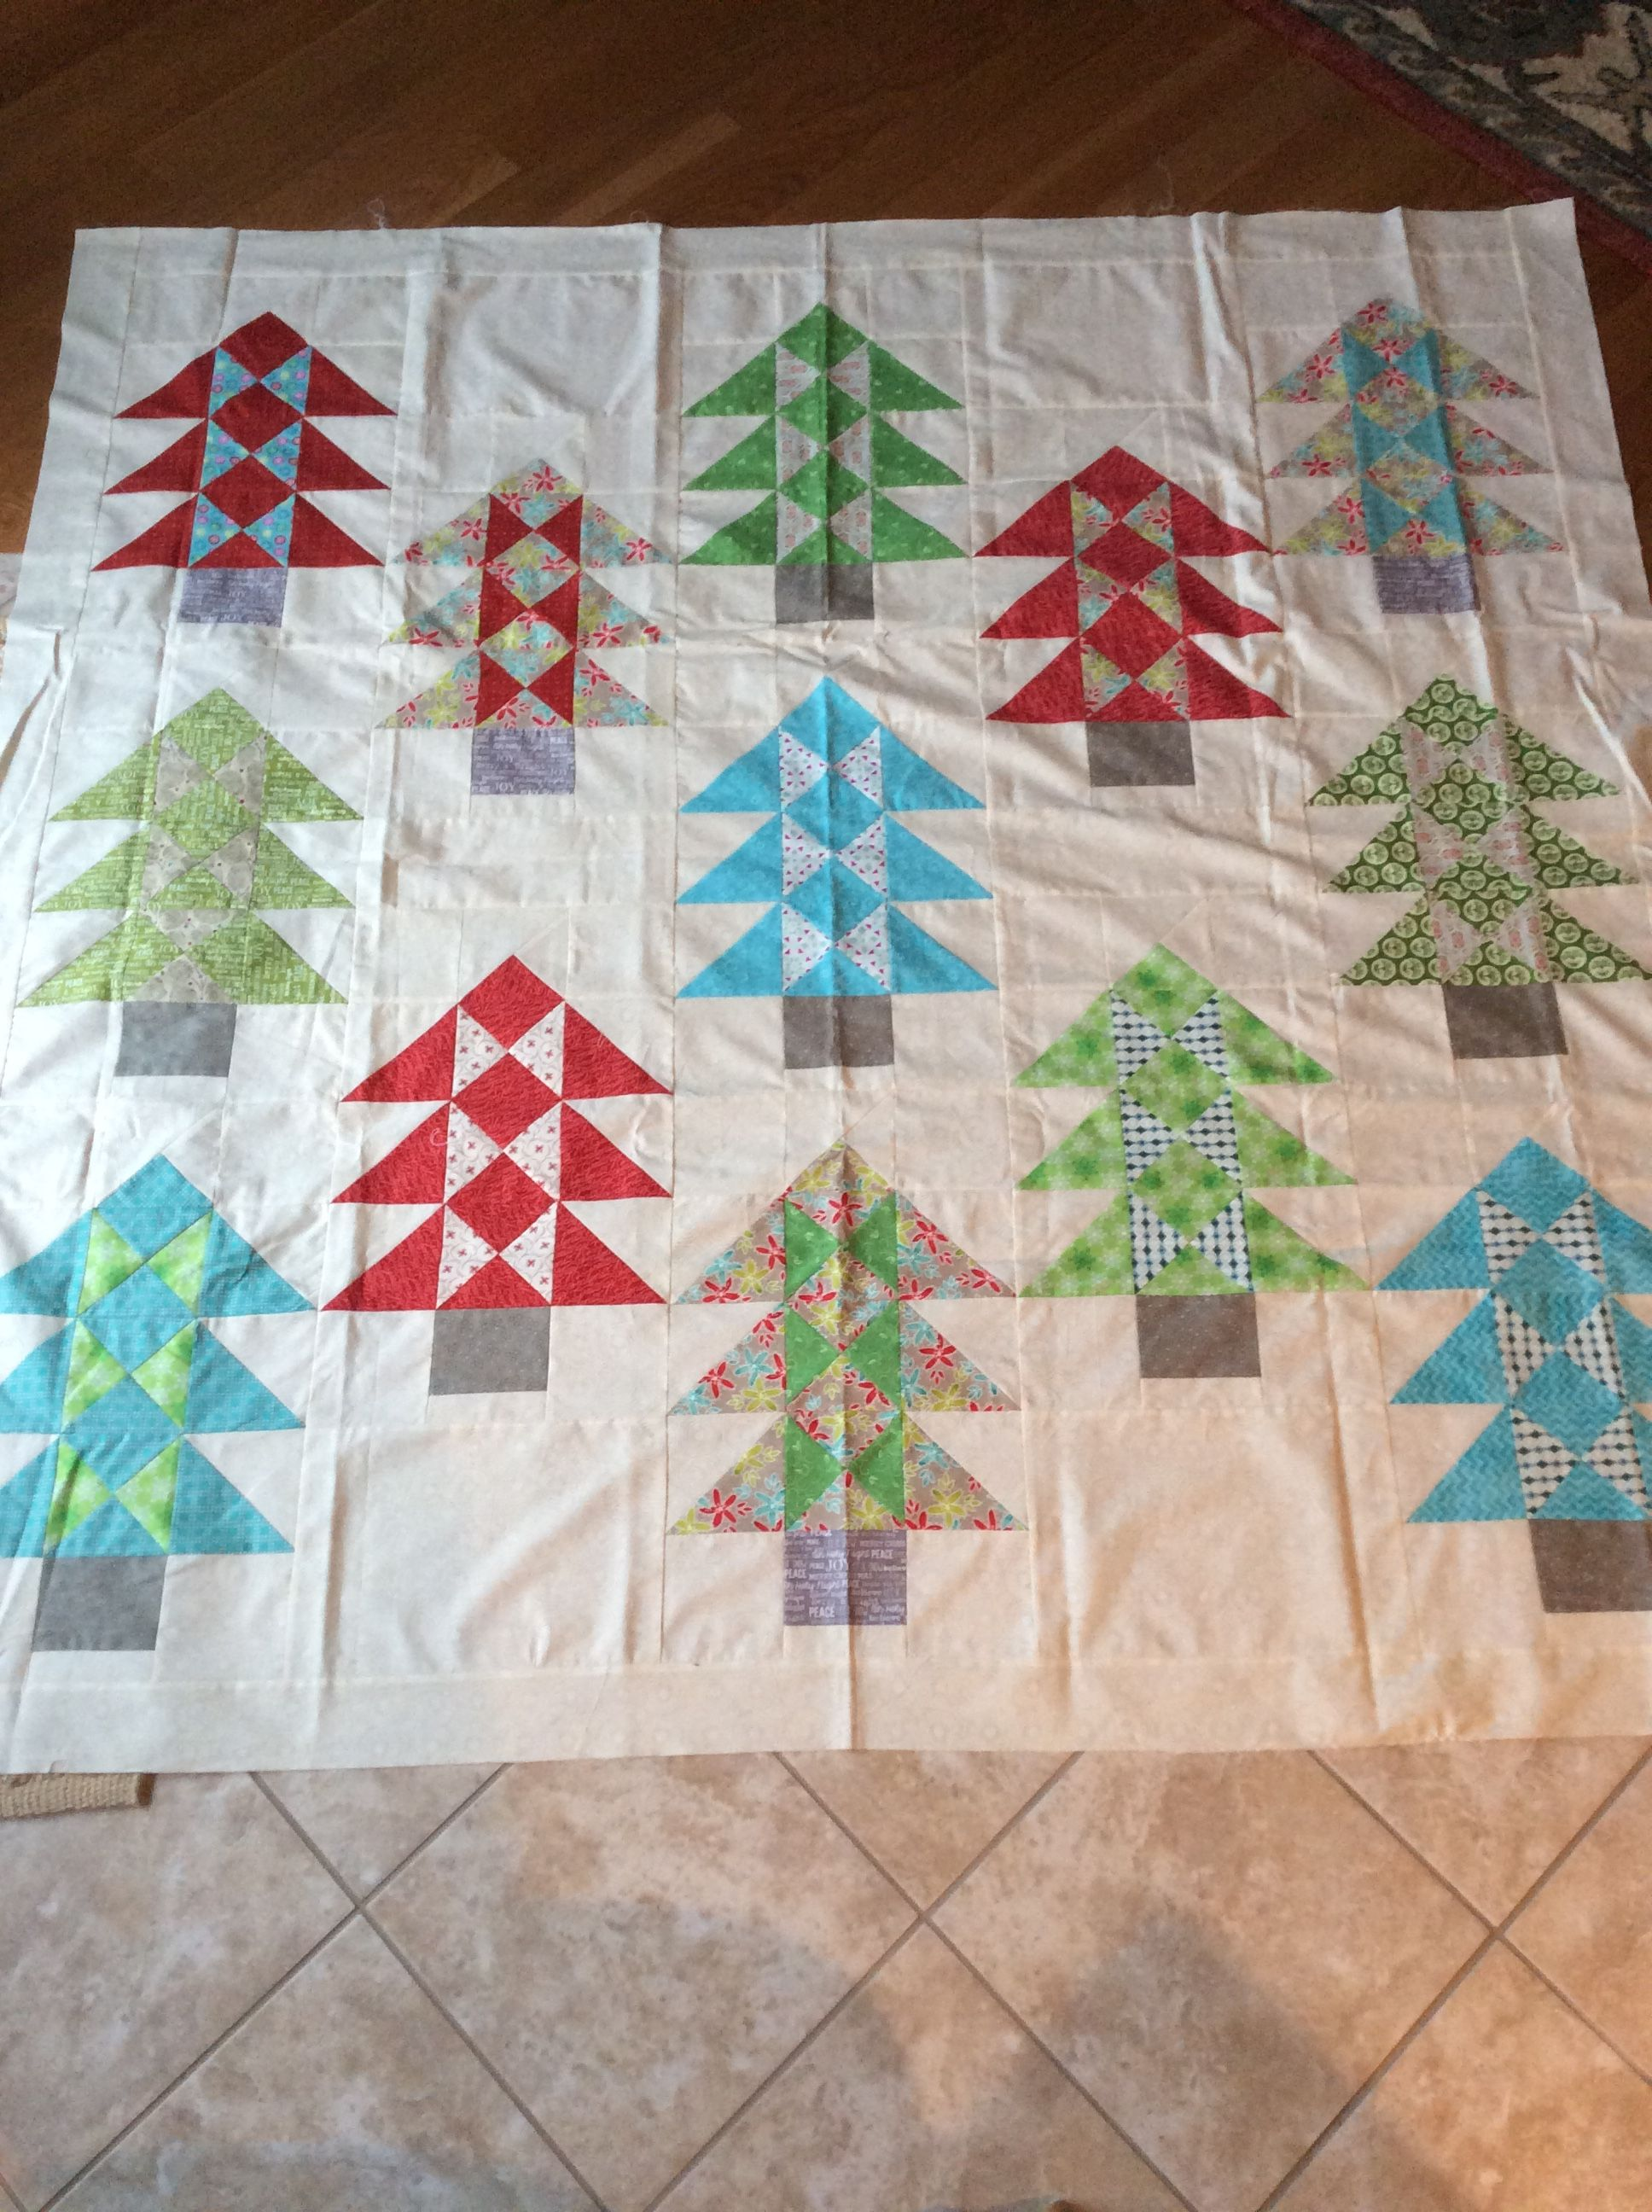 Pinterest Christmas Quilted Wall Hangings Pin By Suzanne Mcandrews On Quilts By Suzanne Pinterest